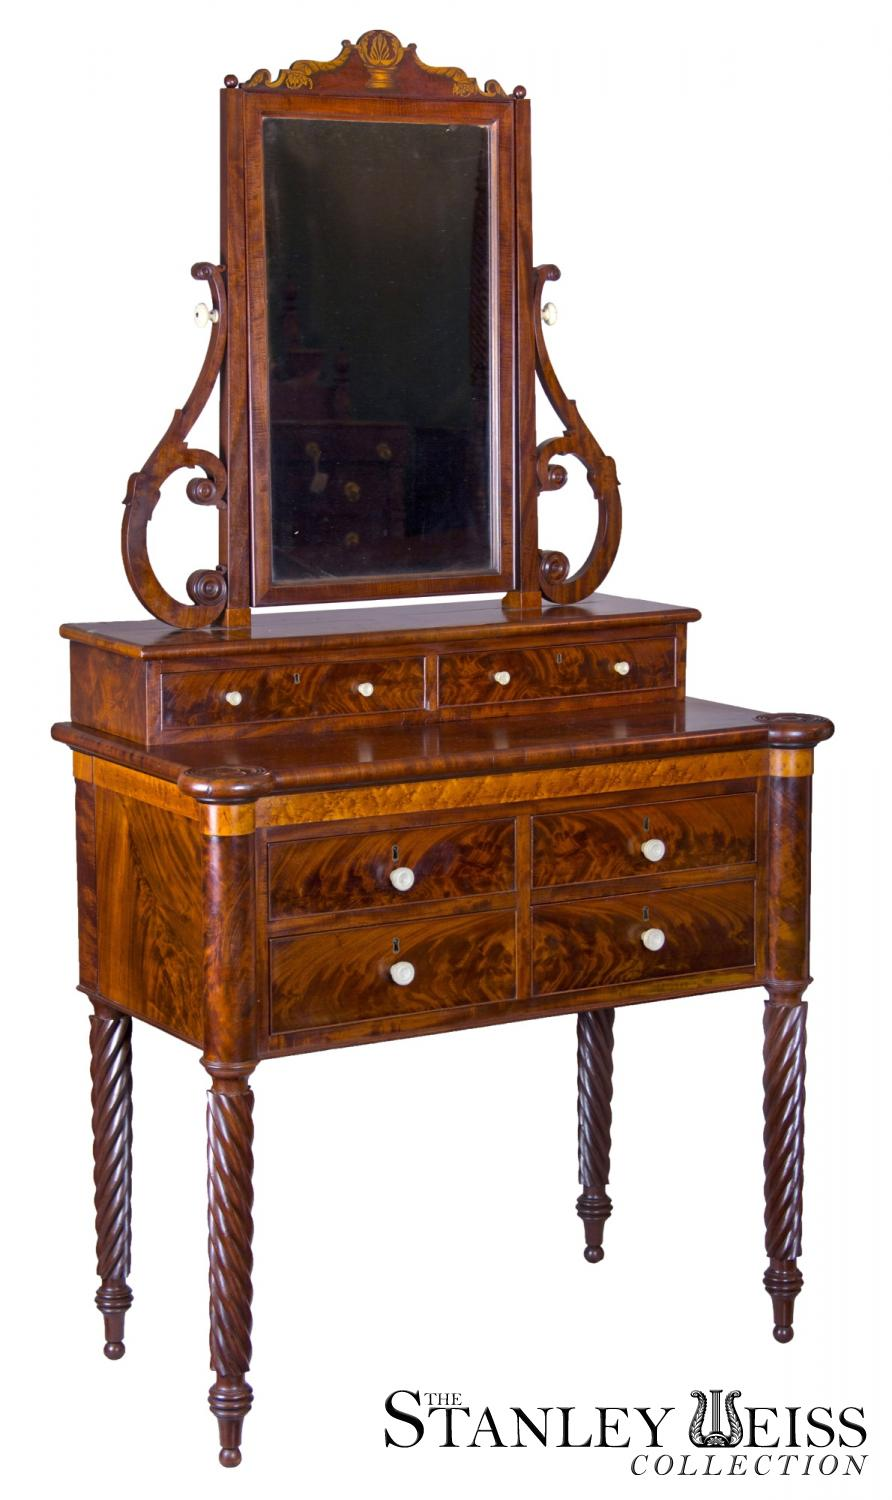 A classical mahogany and birds eye maple dressing table